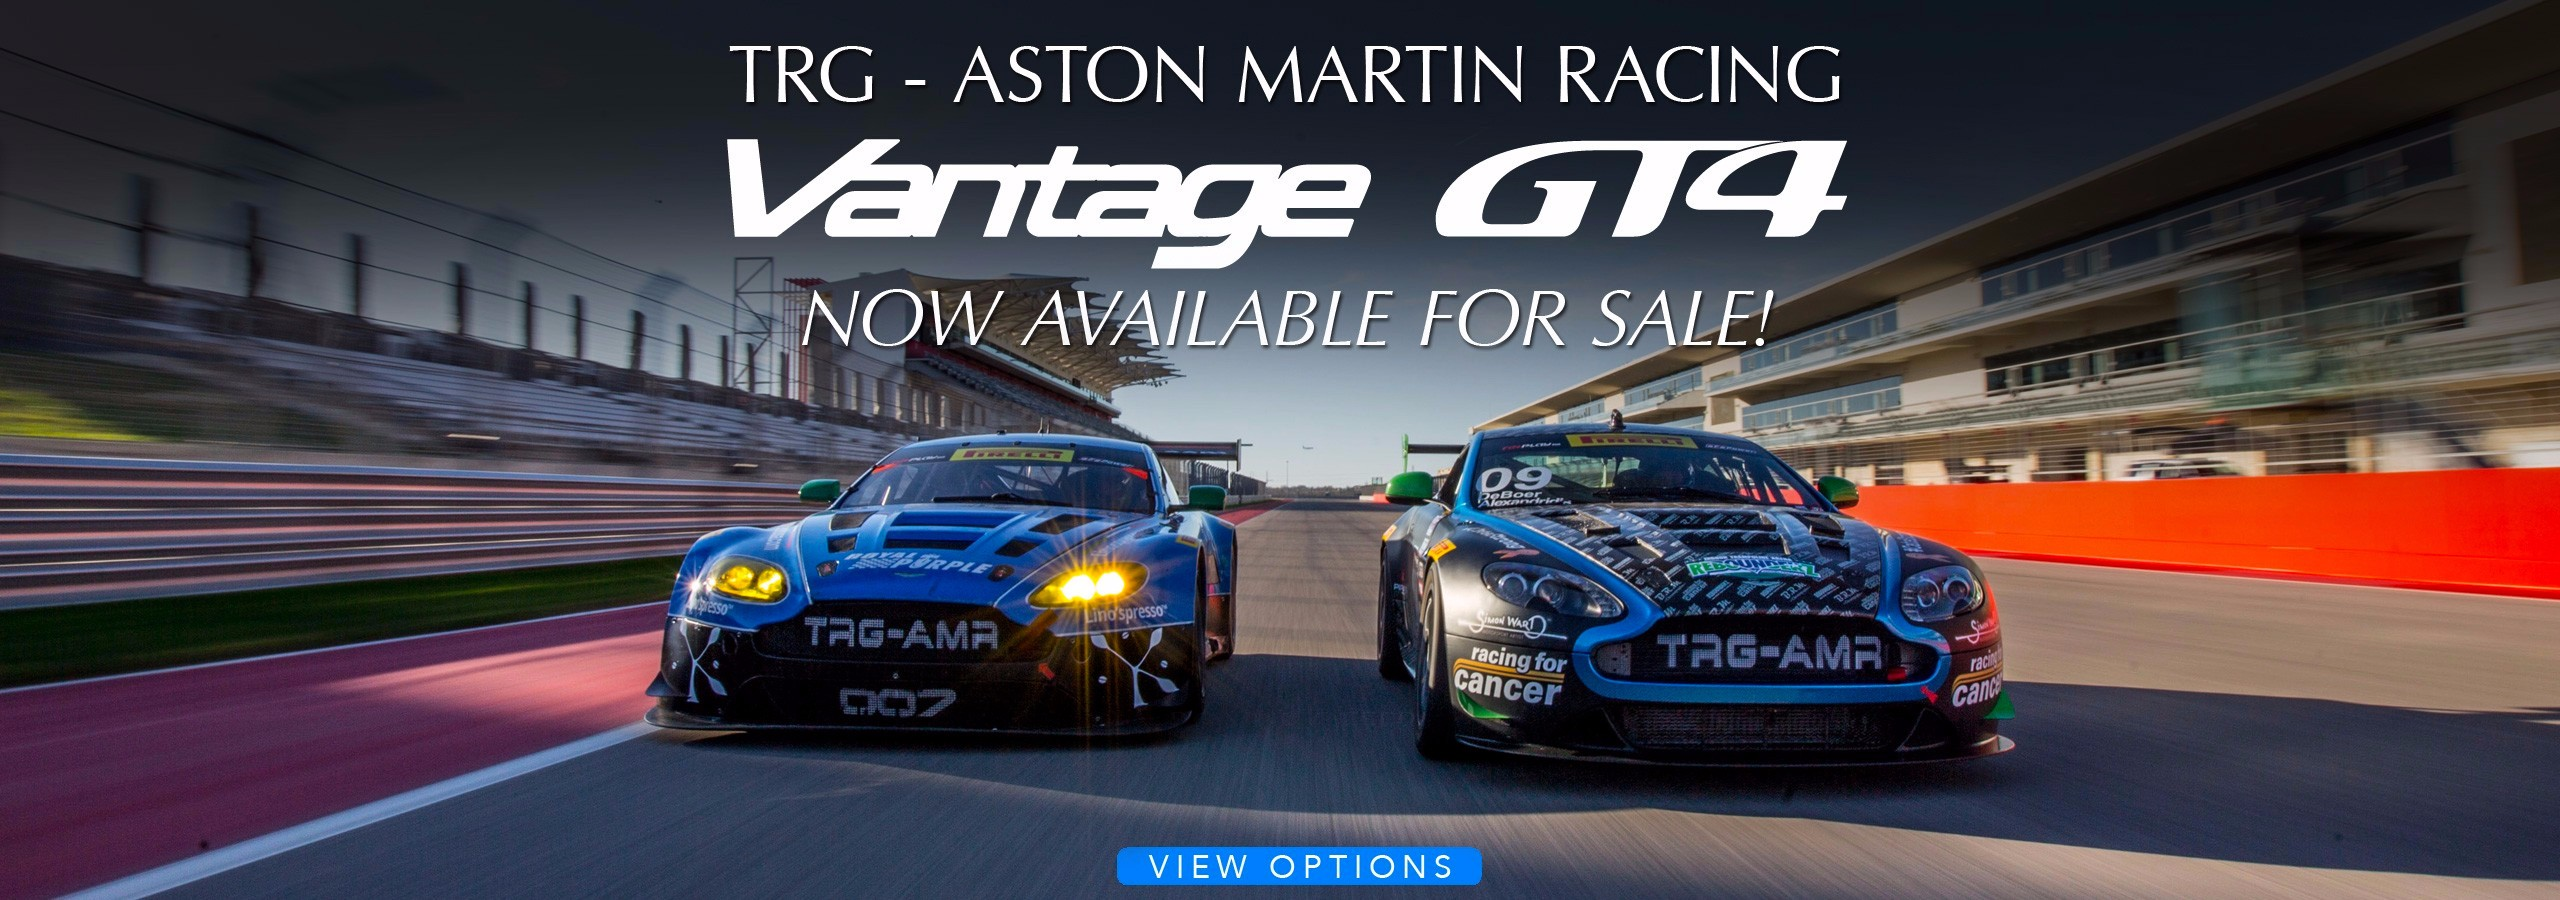 TRG-Aston Martin V8 Vantage GT4s Now Available for Sale!